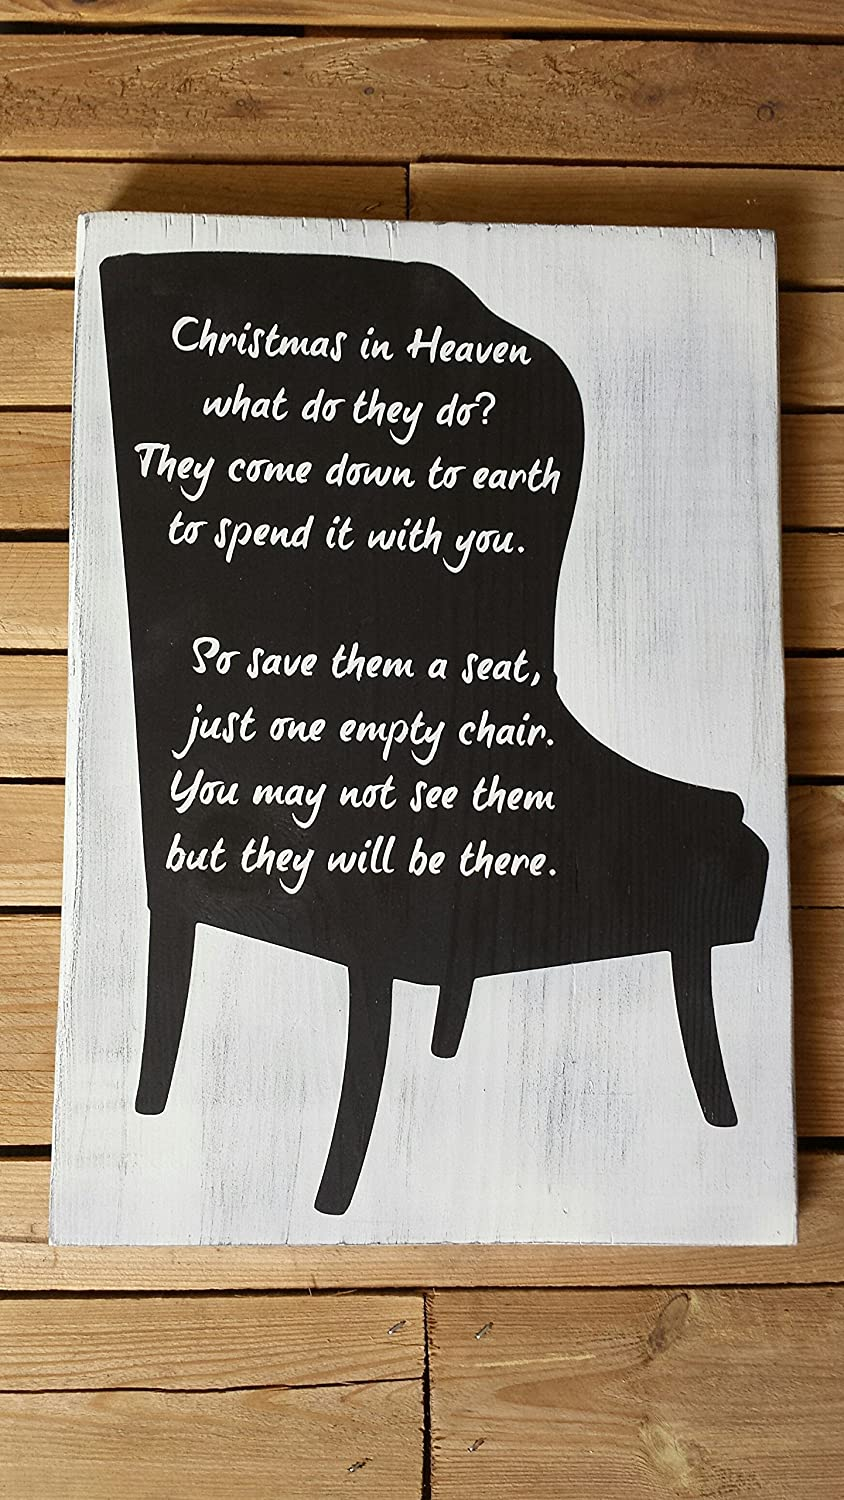 Christmas In Heaven Poem With Chair Printable.Amazon Com 11x16 Christmas In Heaven What Do They Do Poem